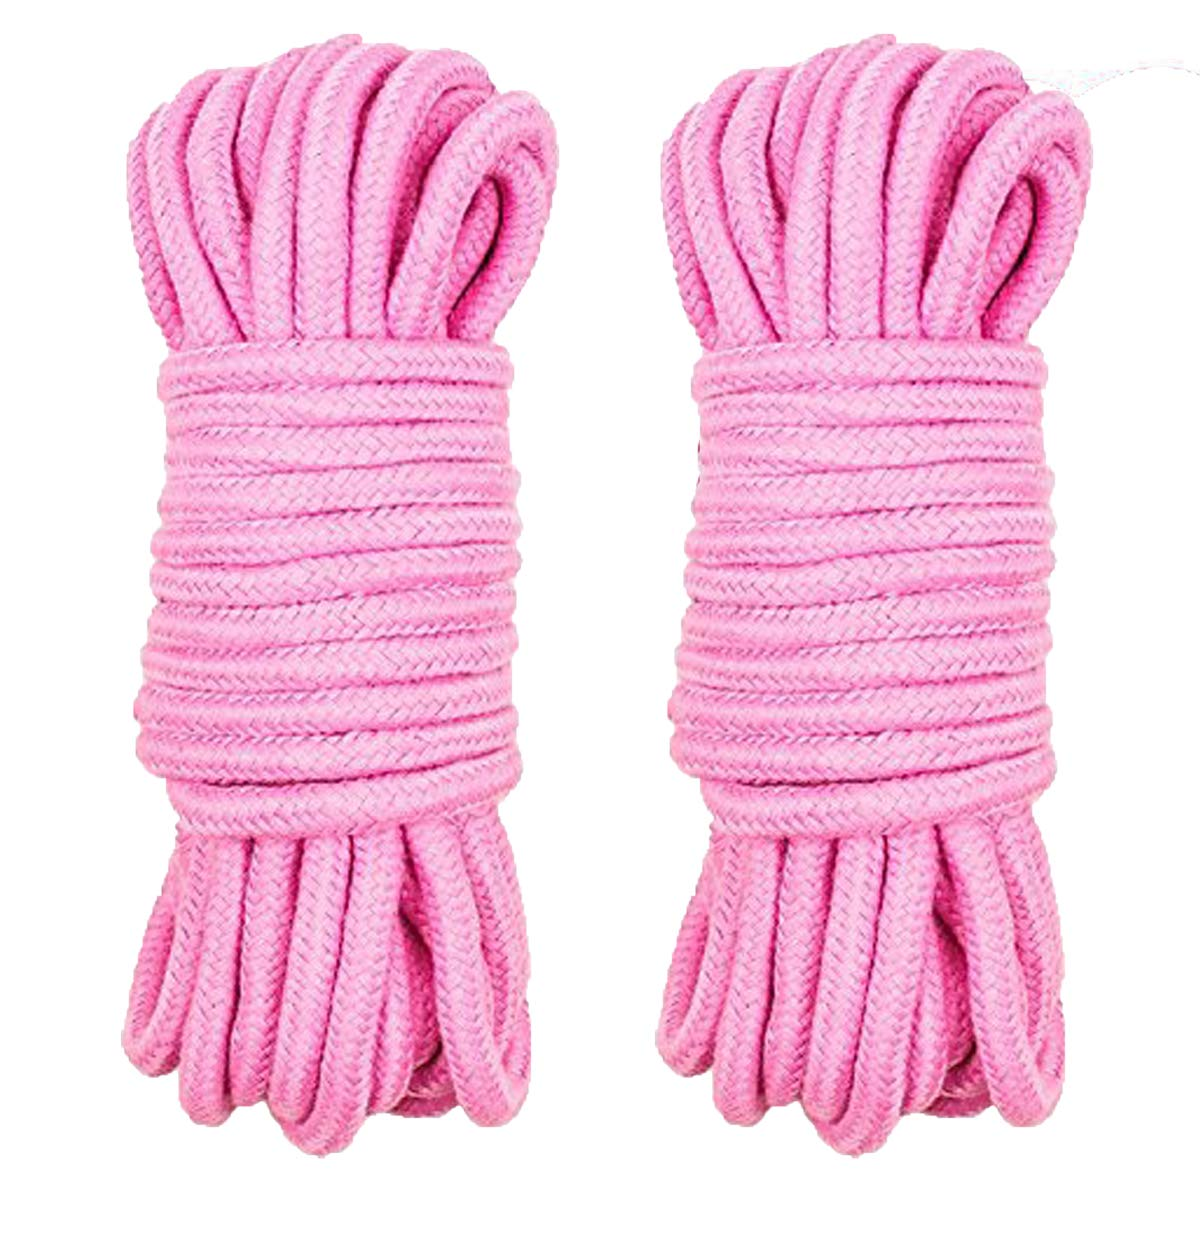 Soft and Sturdy Pink Pink All-Purpose Color Cotton Twisted Rope LIMTED TIME Offer Knot Tying Rope 32 Feet Length,1//3-Inch Diameter